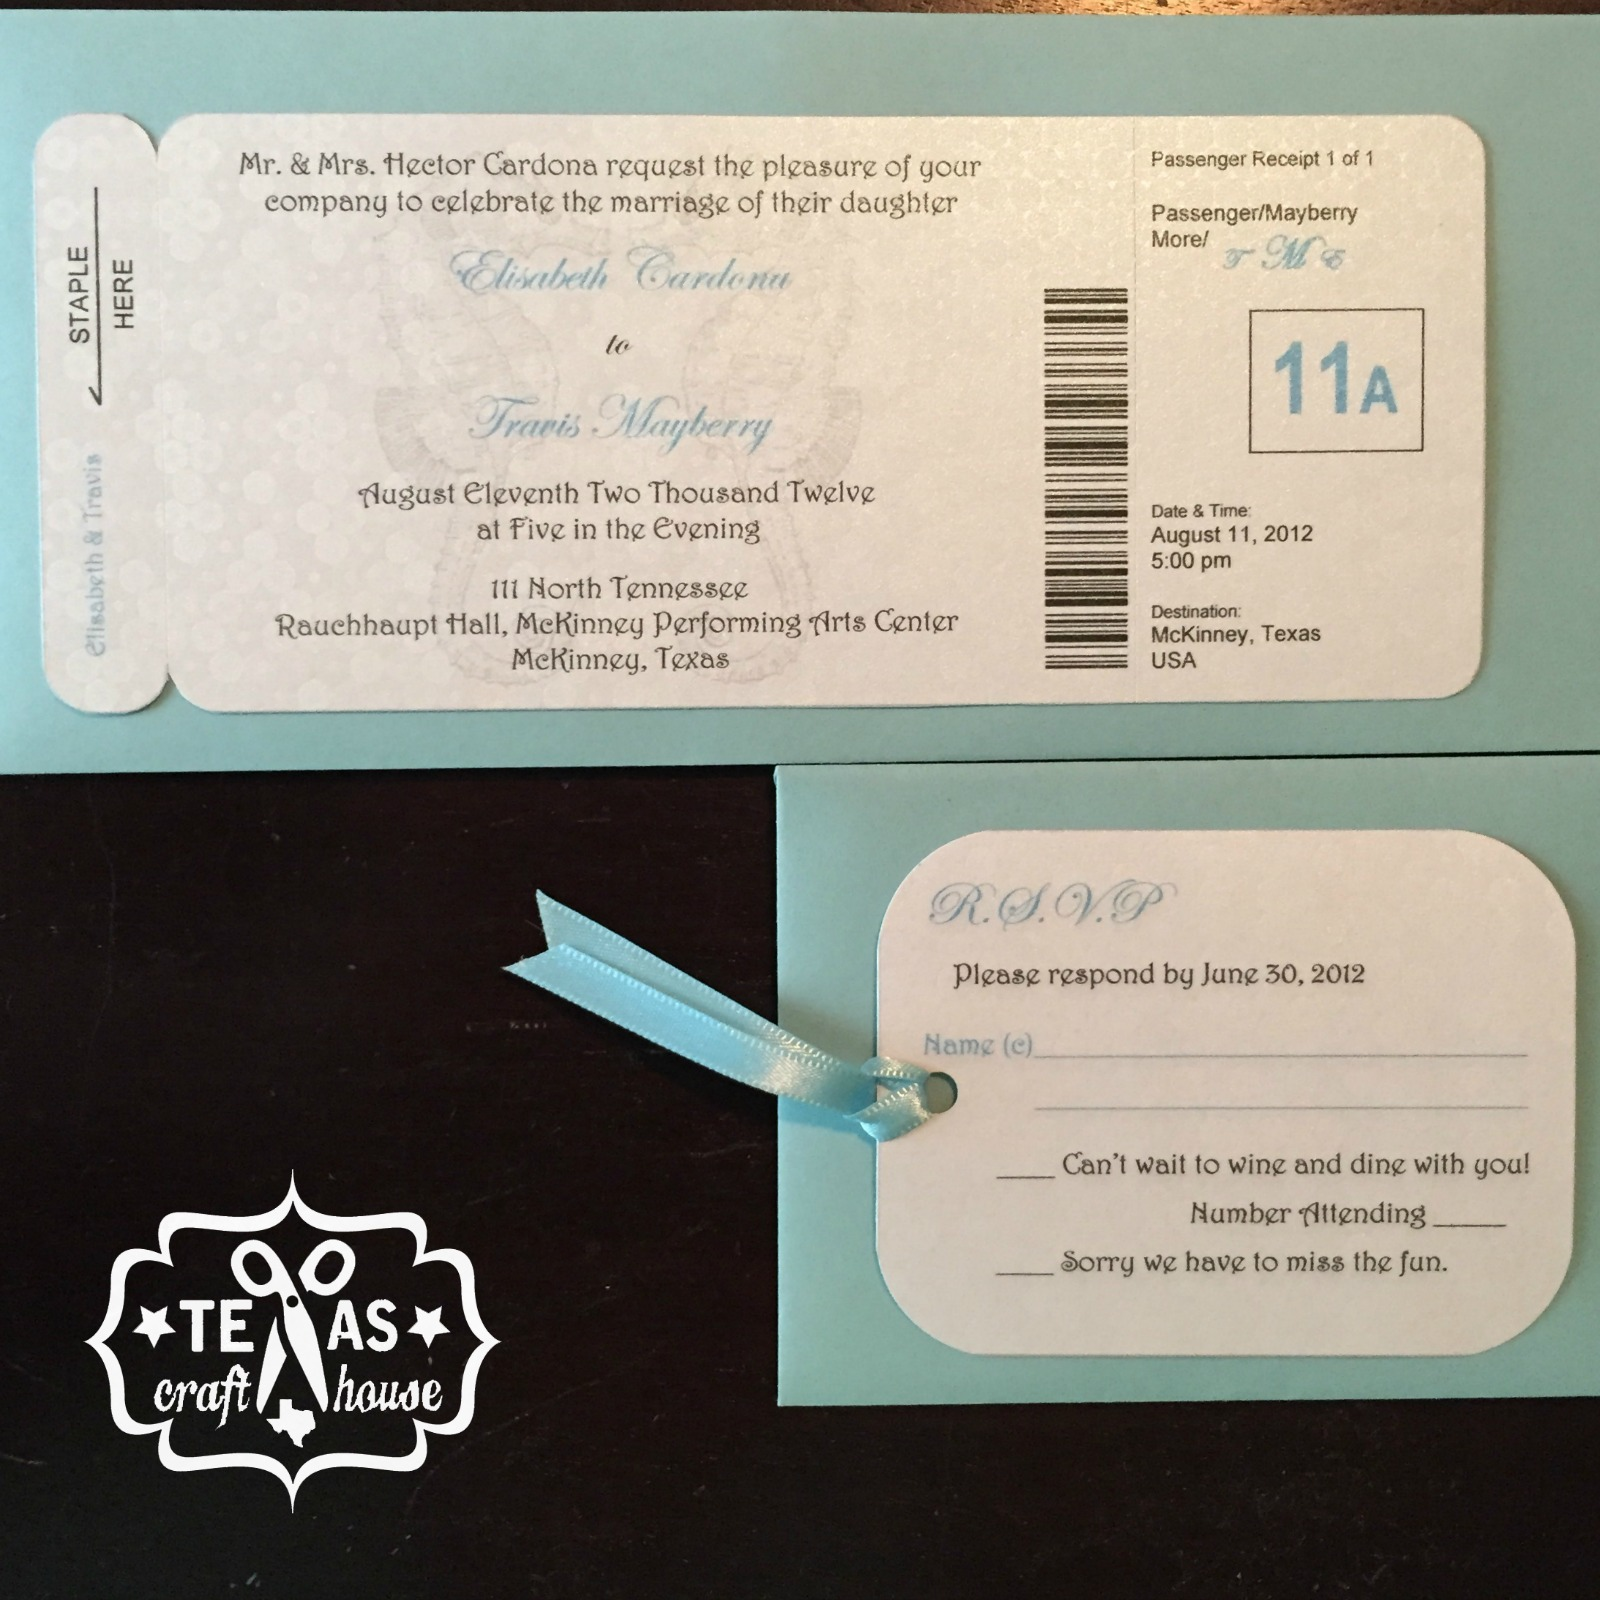 make your own wedding invitations | texas craft house, Wedding invitations